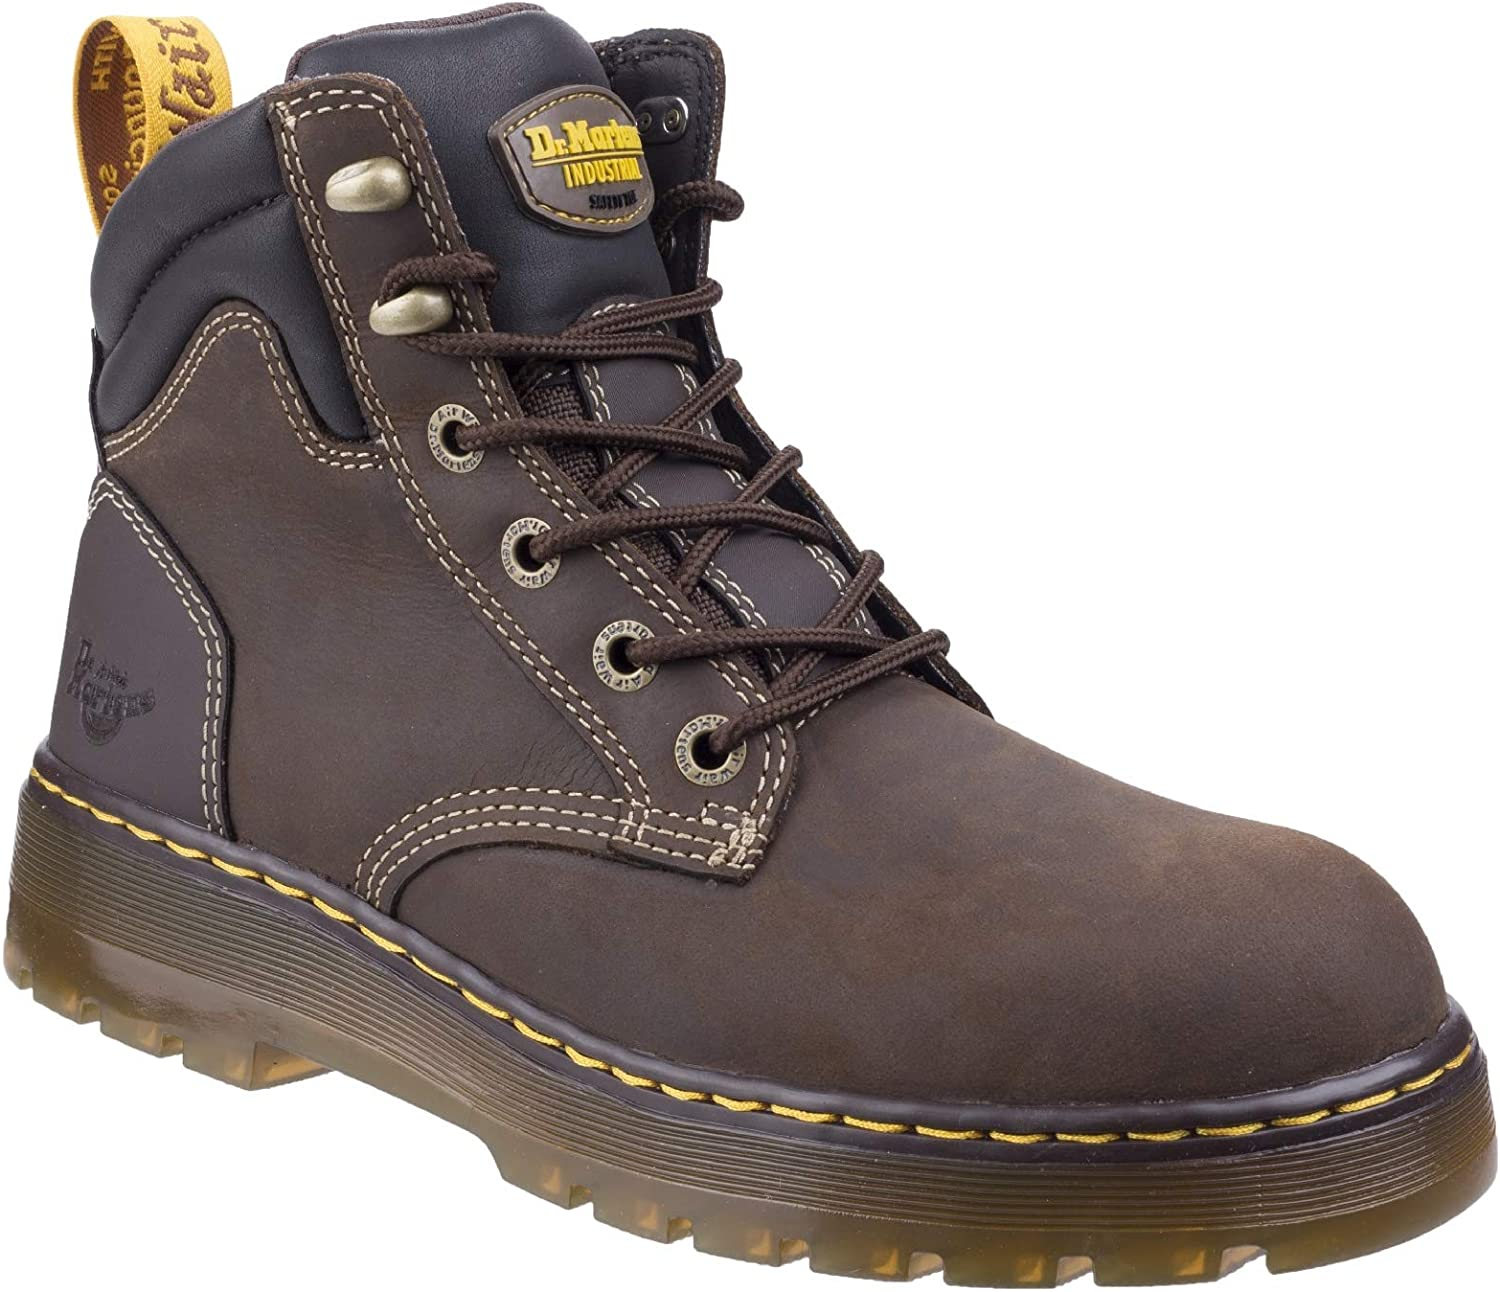 Dr. Martens Mens Brace Hiking Style Safety Boot